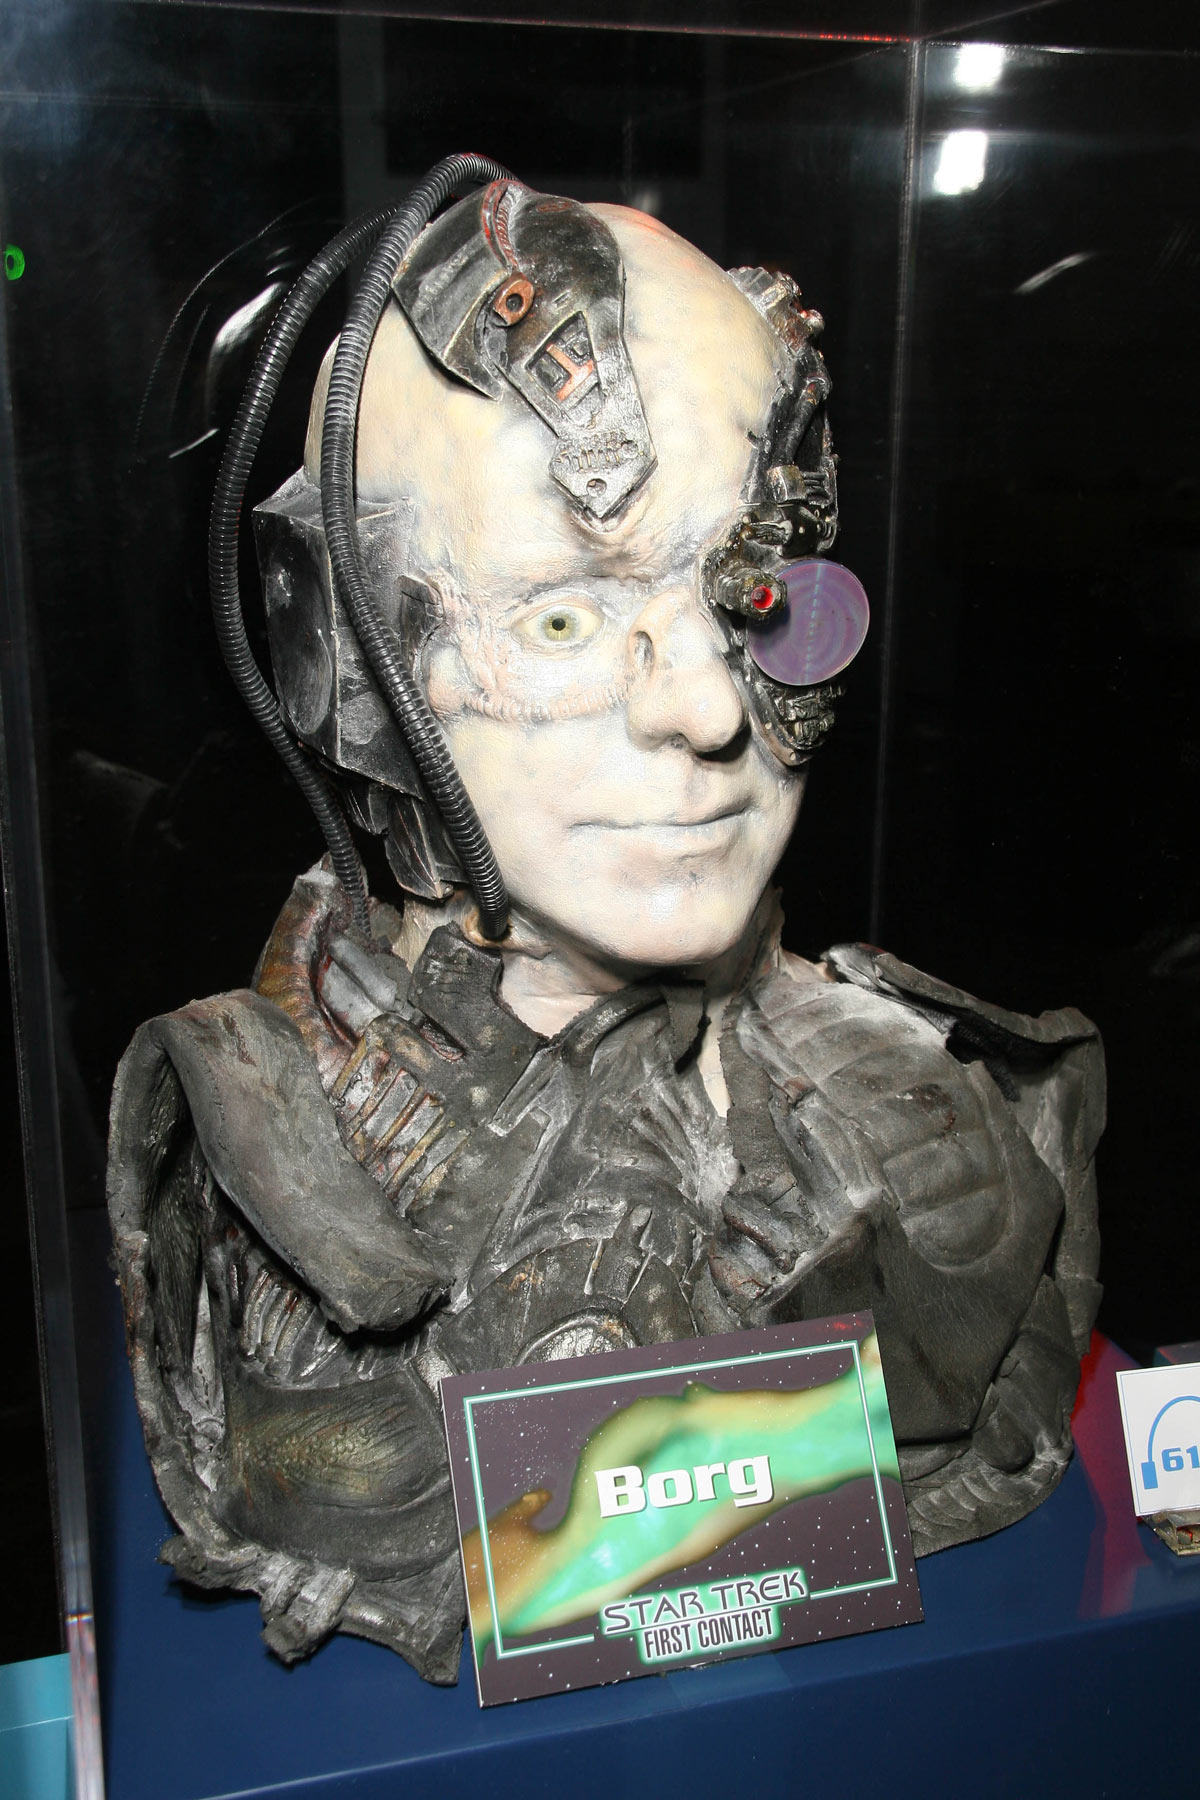 Image of the Borg at a Star Trek display illustrating the idea that Postmates is being assimilated by Uber Eats.